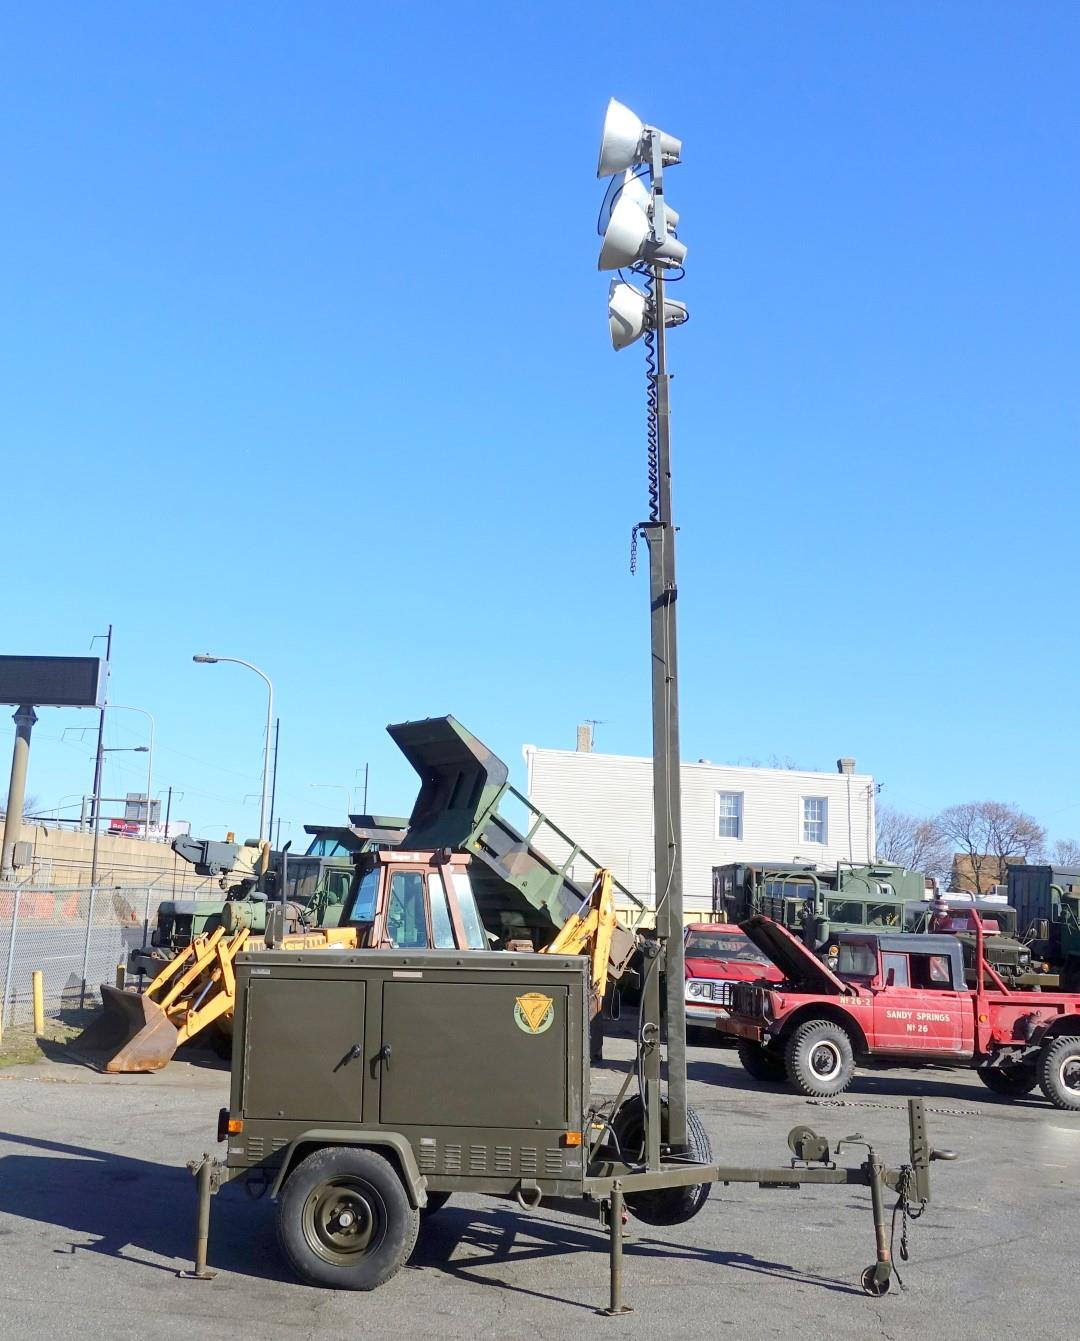 1990 Trailer Mounted 5 KW Towable Floodlight Tower With 4